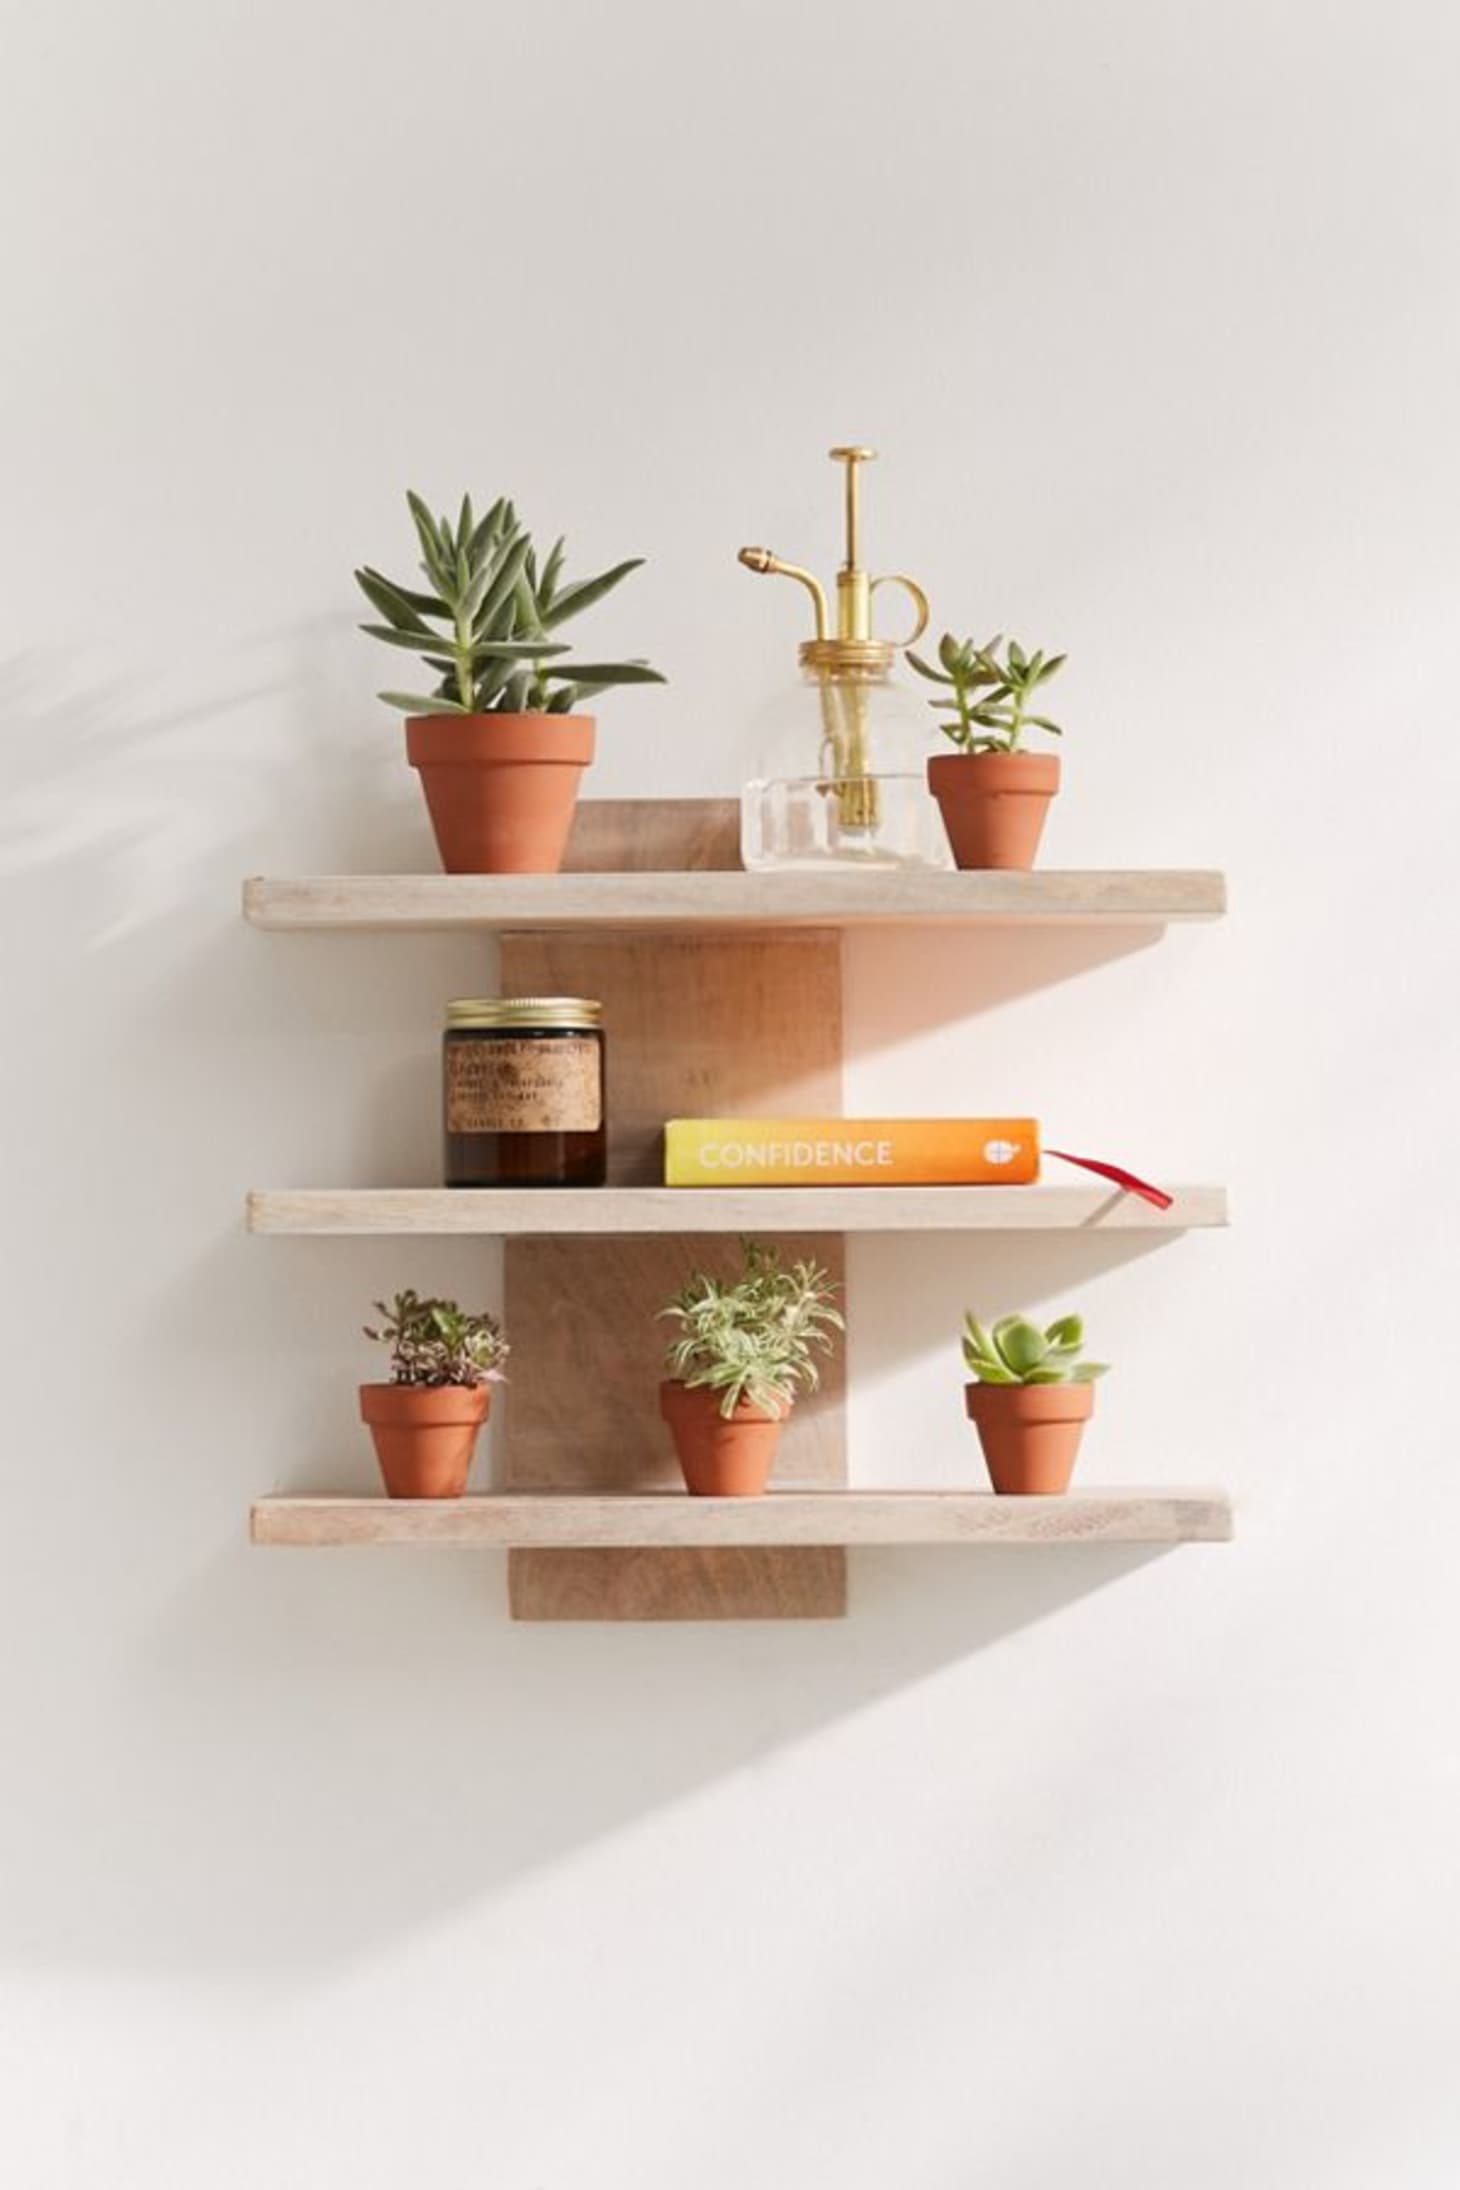 6 ways to create a plant wall in a rental